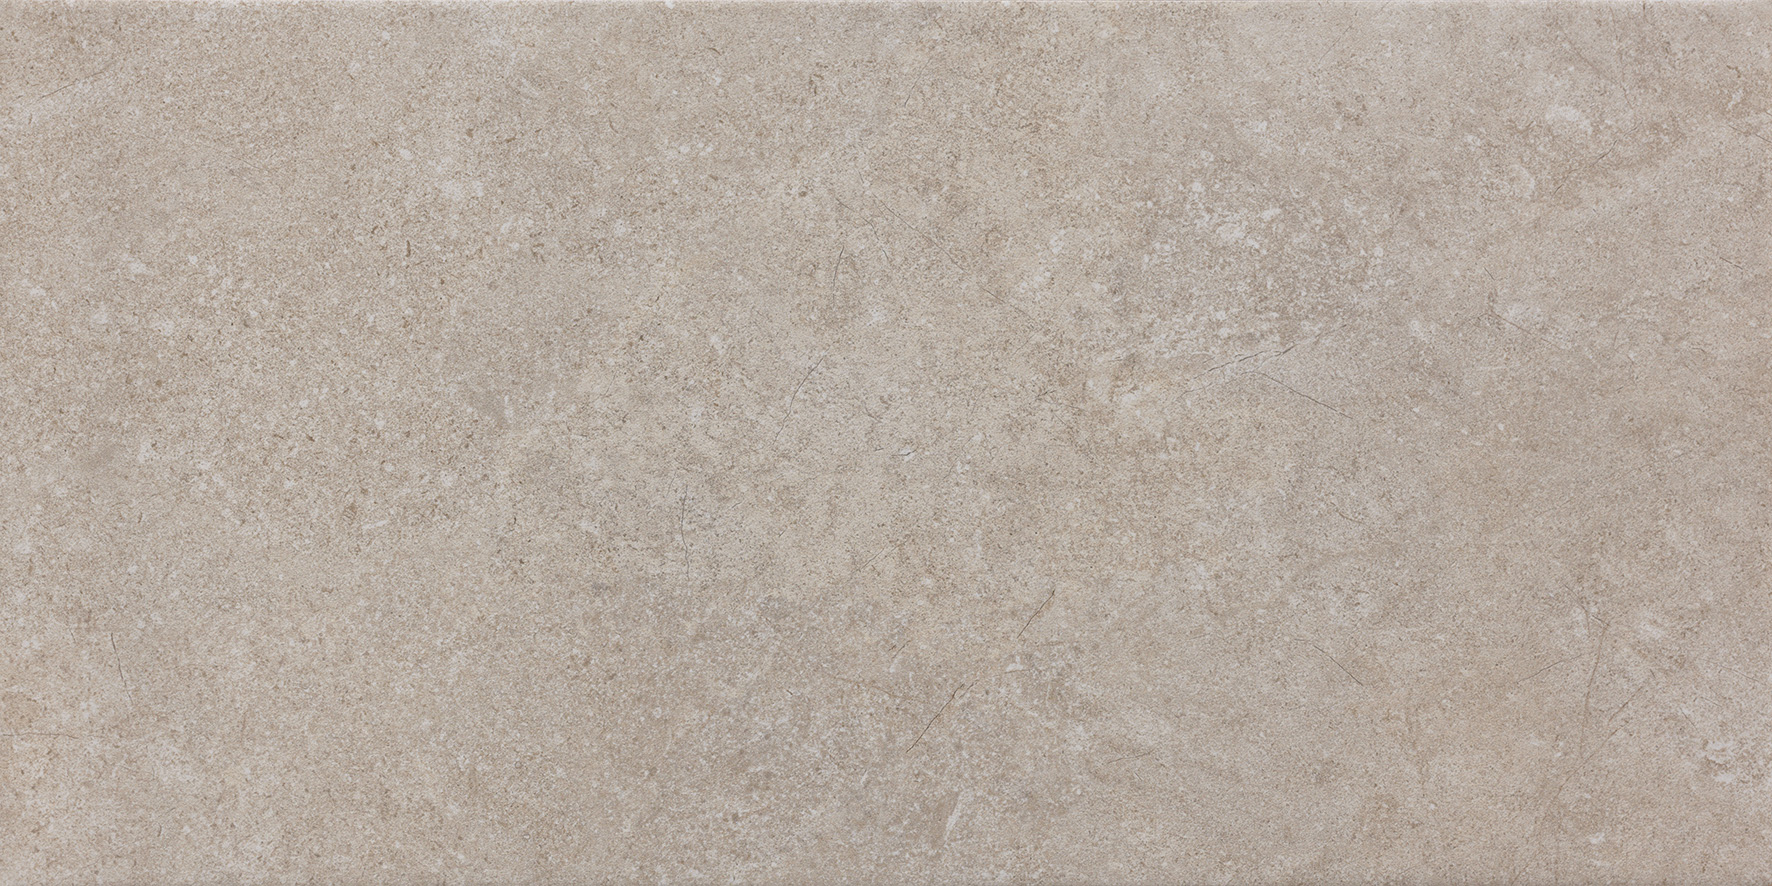 PF00012823_Ecoproject Beige 30x60_V3